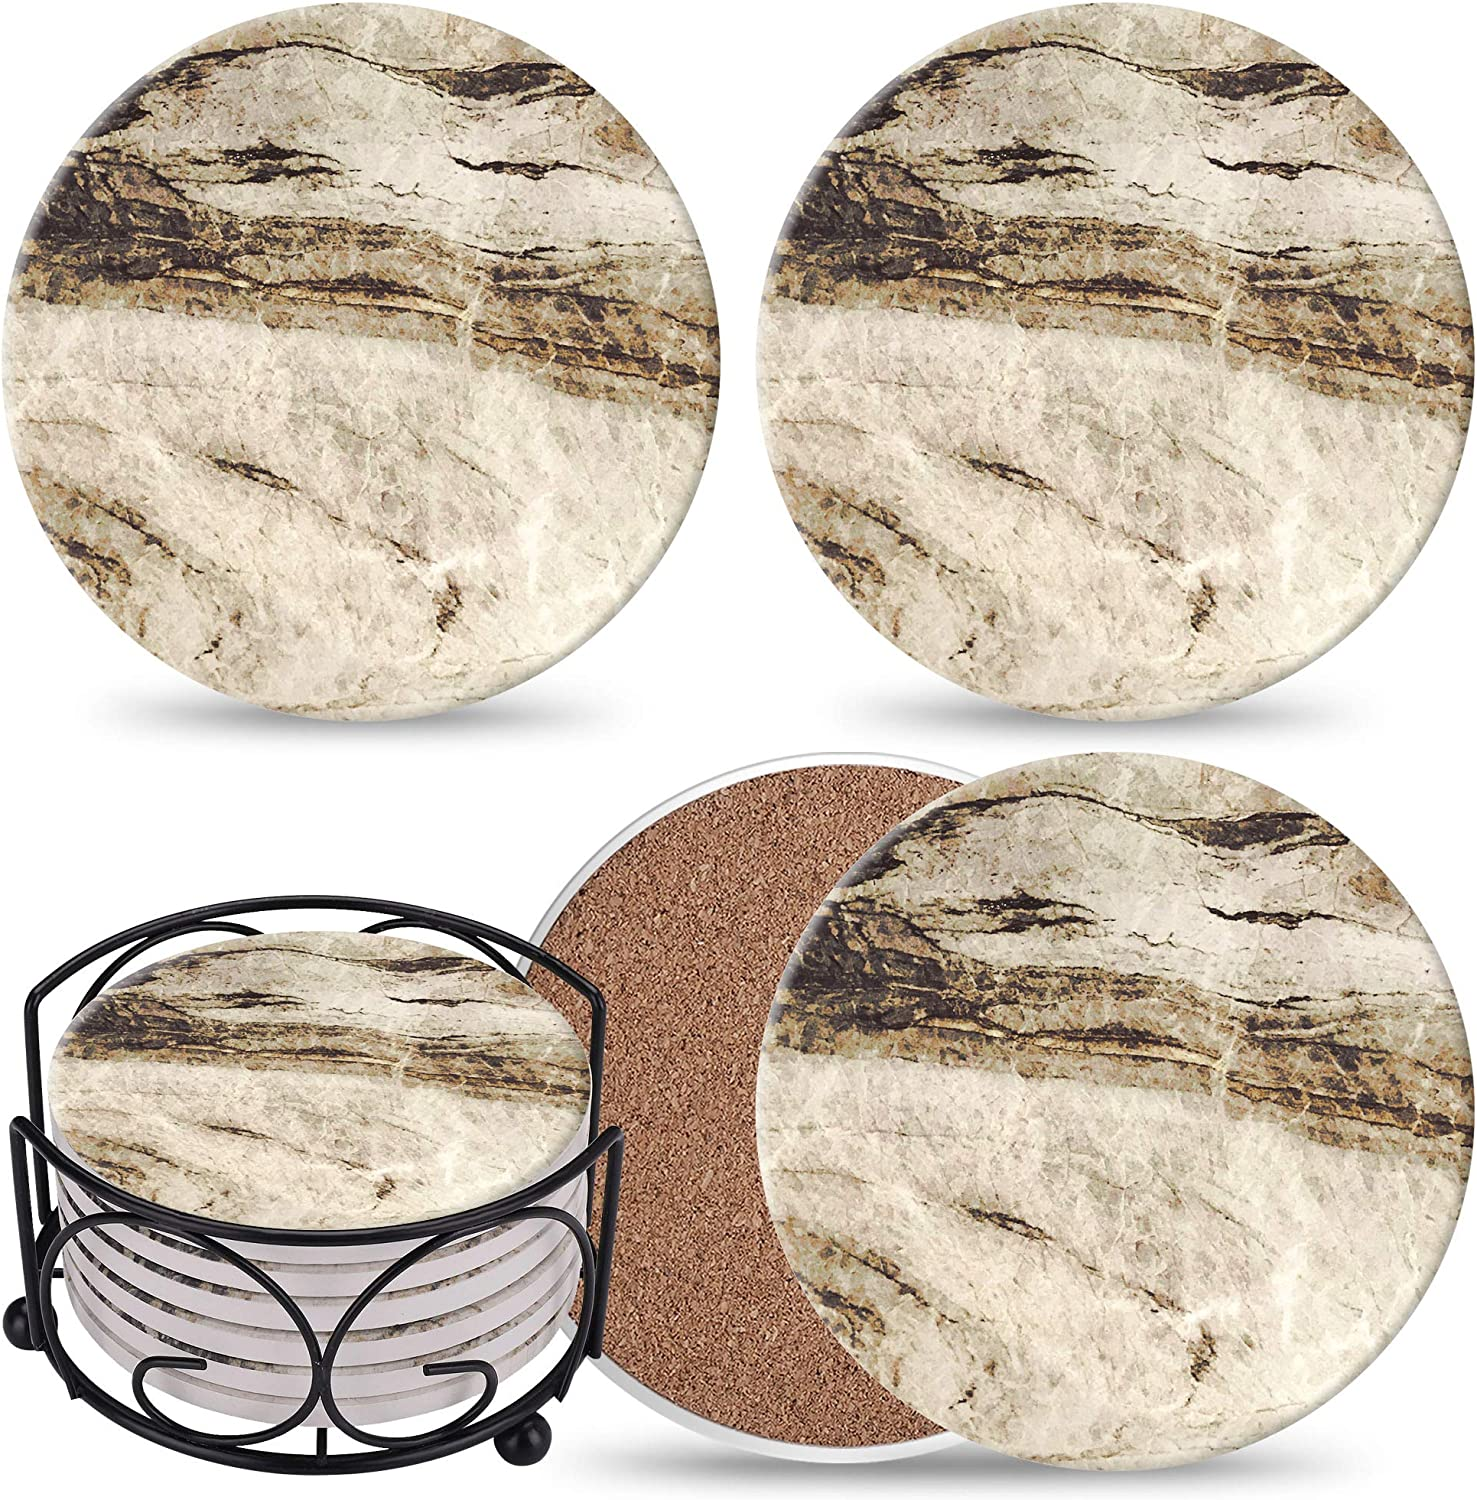 Coasters for Drinks Absorbent with Holder - 6 Pcs Marble Coaster Gift Set - Brown Ceramic Stone Absorbent Coasters with Corked Back - Present for Housewarming Decor